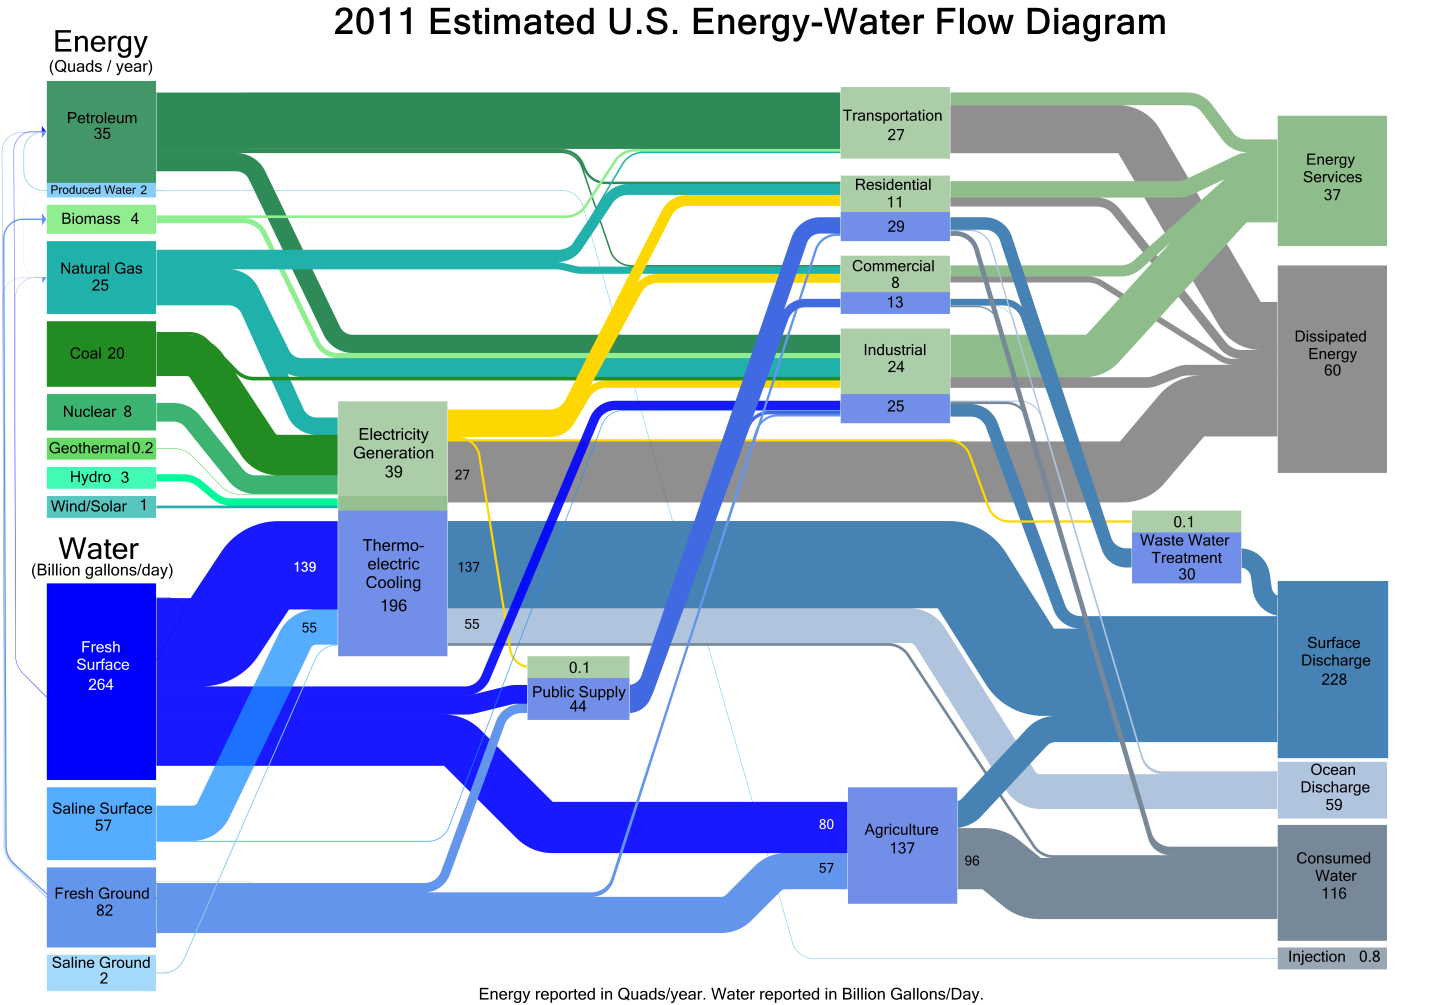 OurEnergyPolicy.org | The Water-Energy Nexus: How Can Collaboration ...